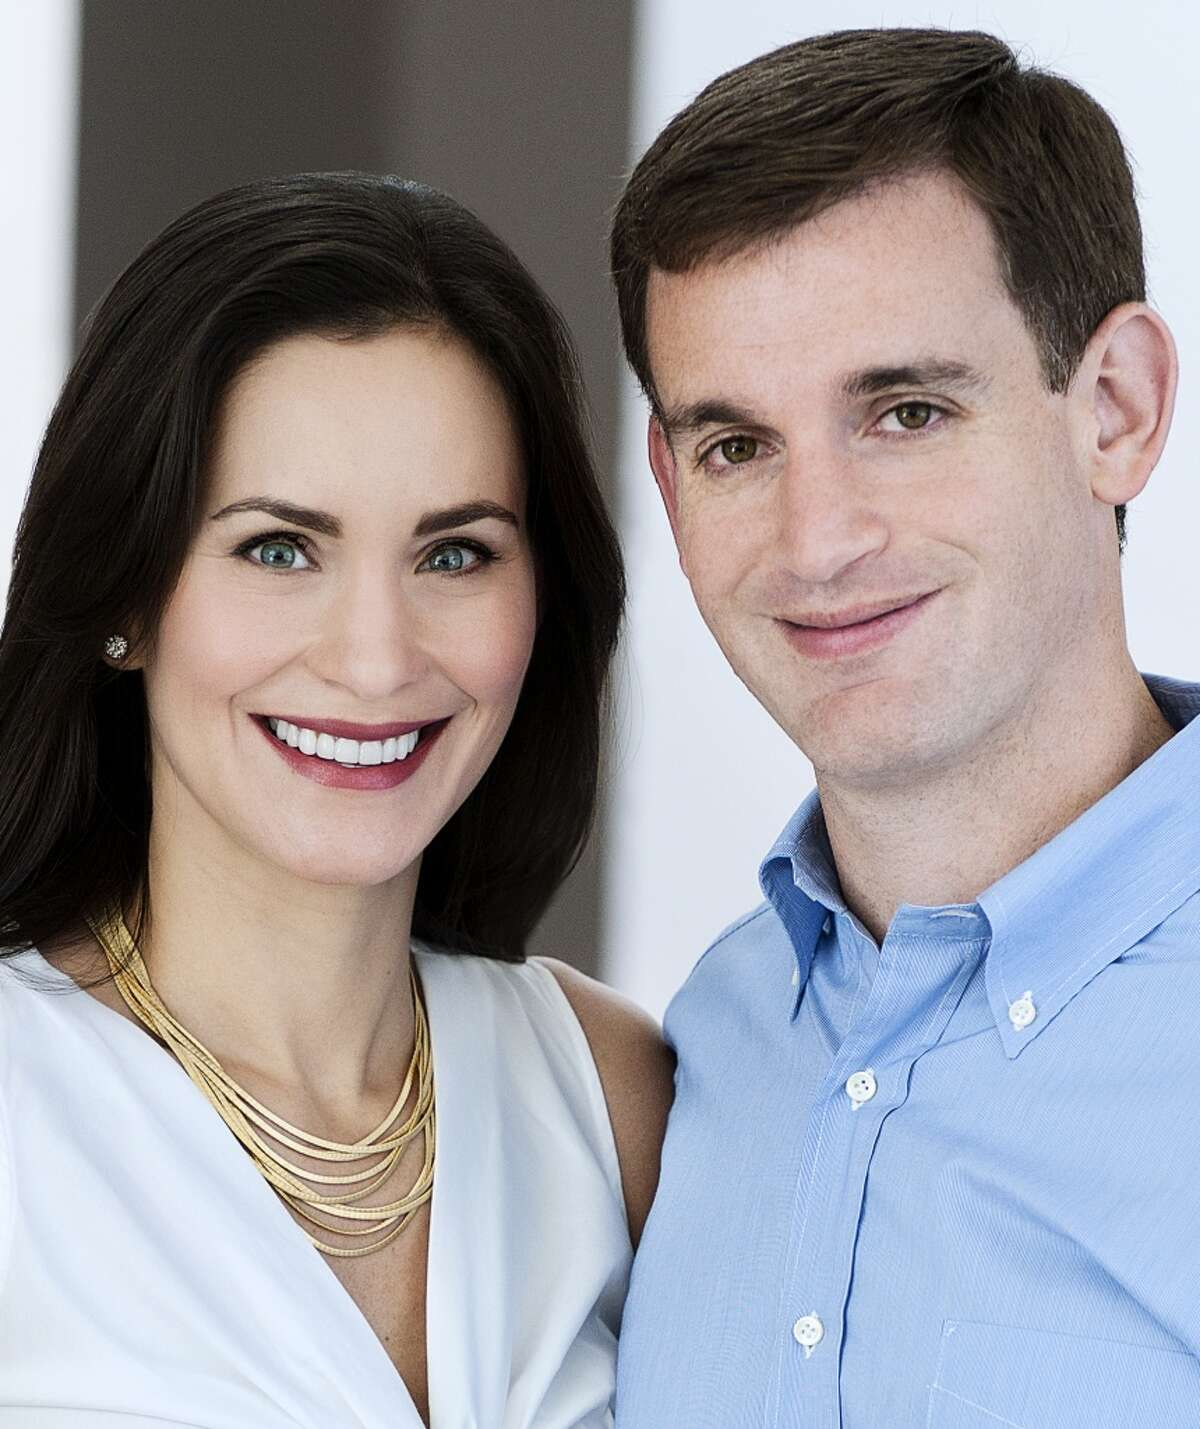 Laura Arnold Together with her husband, John, the pair co-founded the Arnold Foundation, which seeks to reform social injustices. Laura is an attorney and a former oil exec.